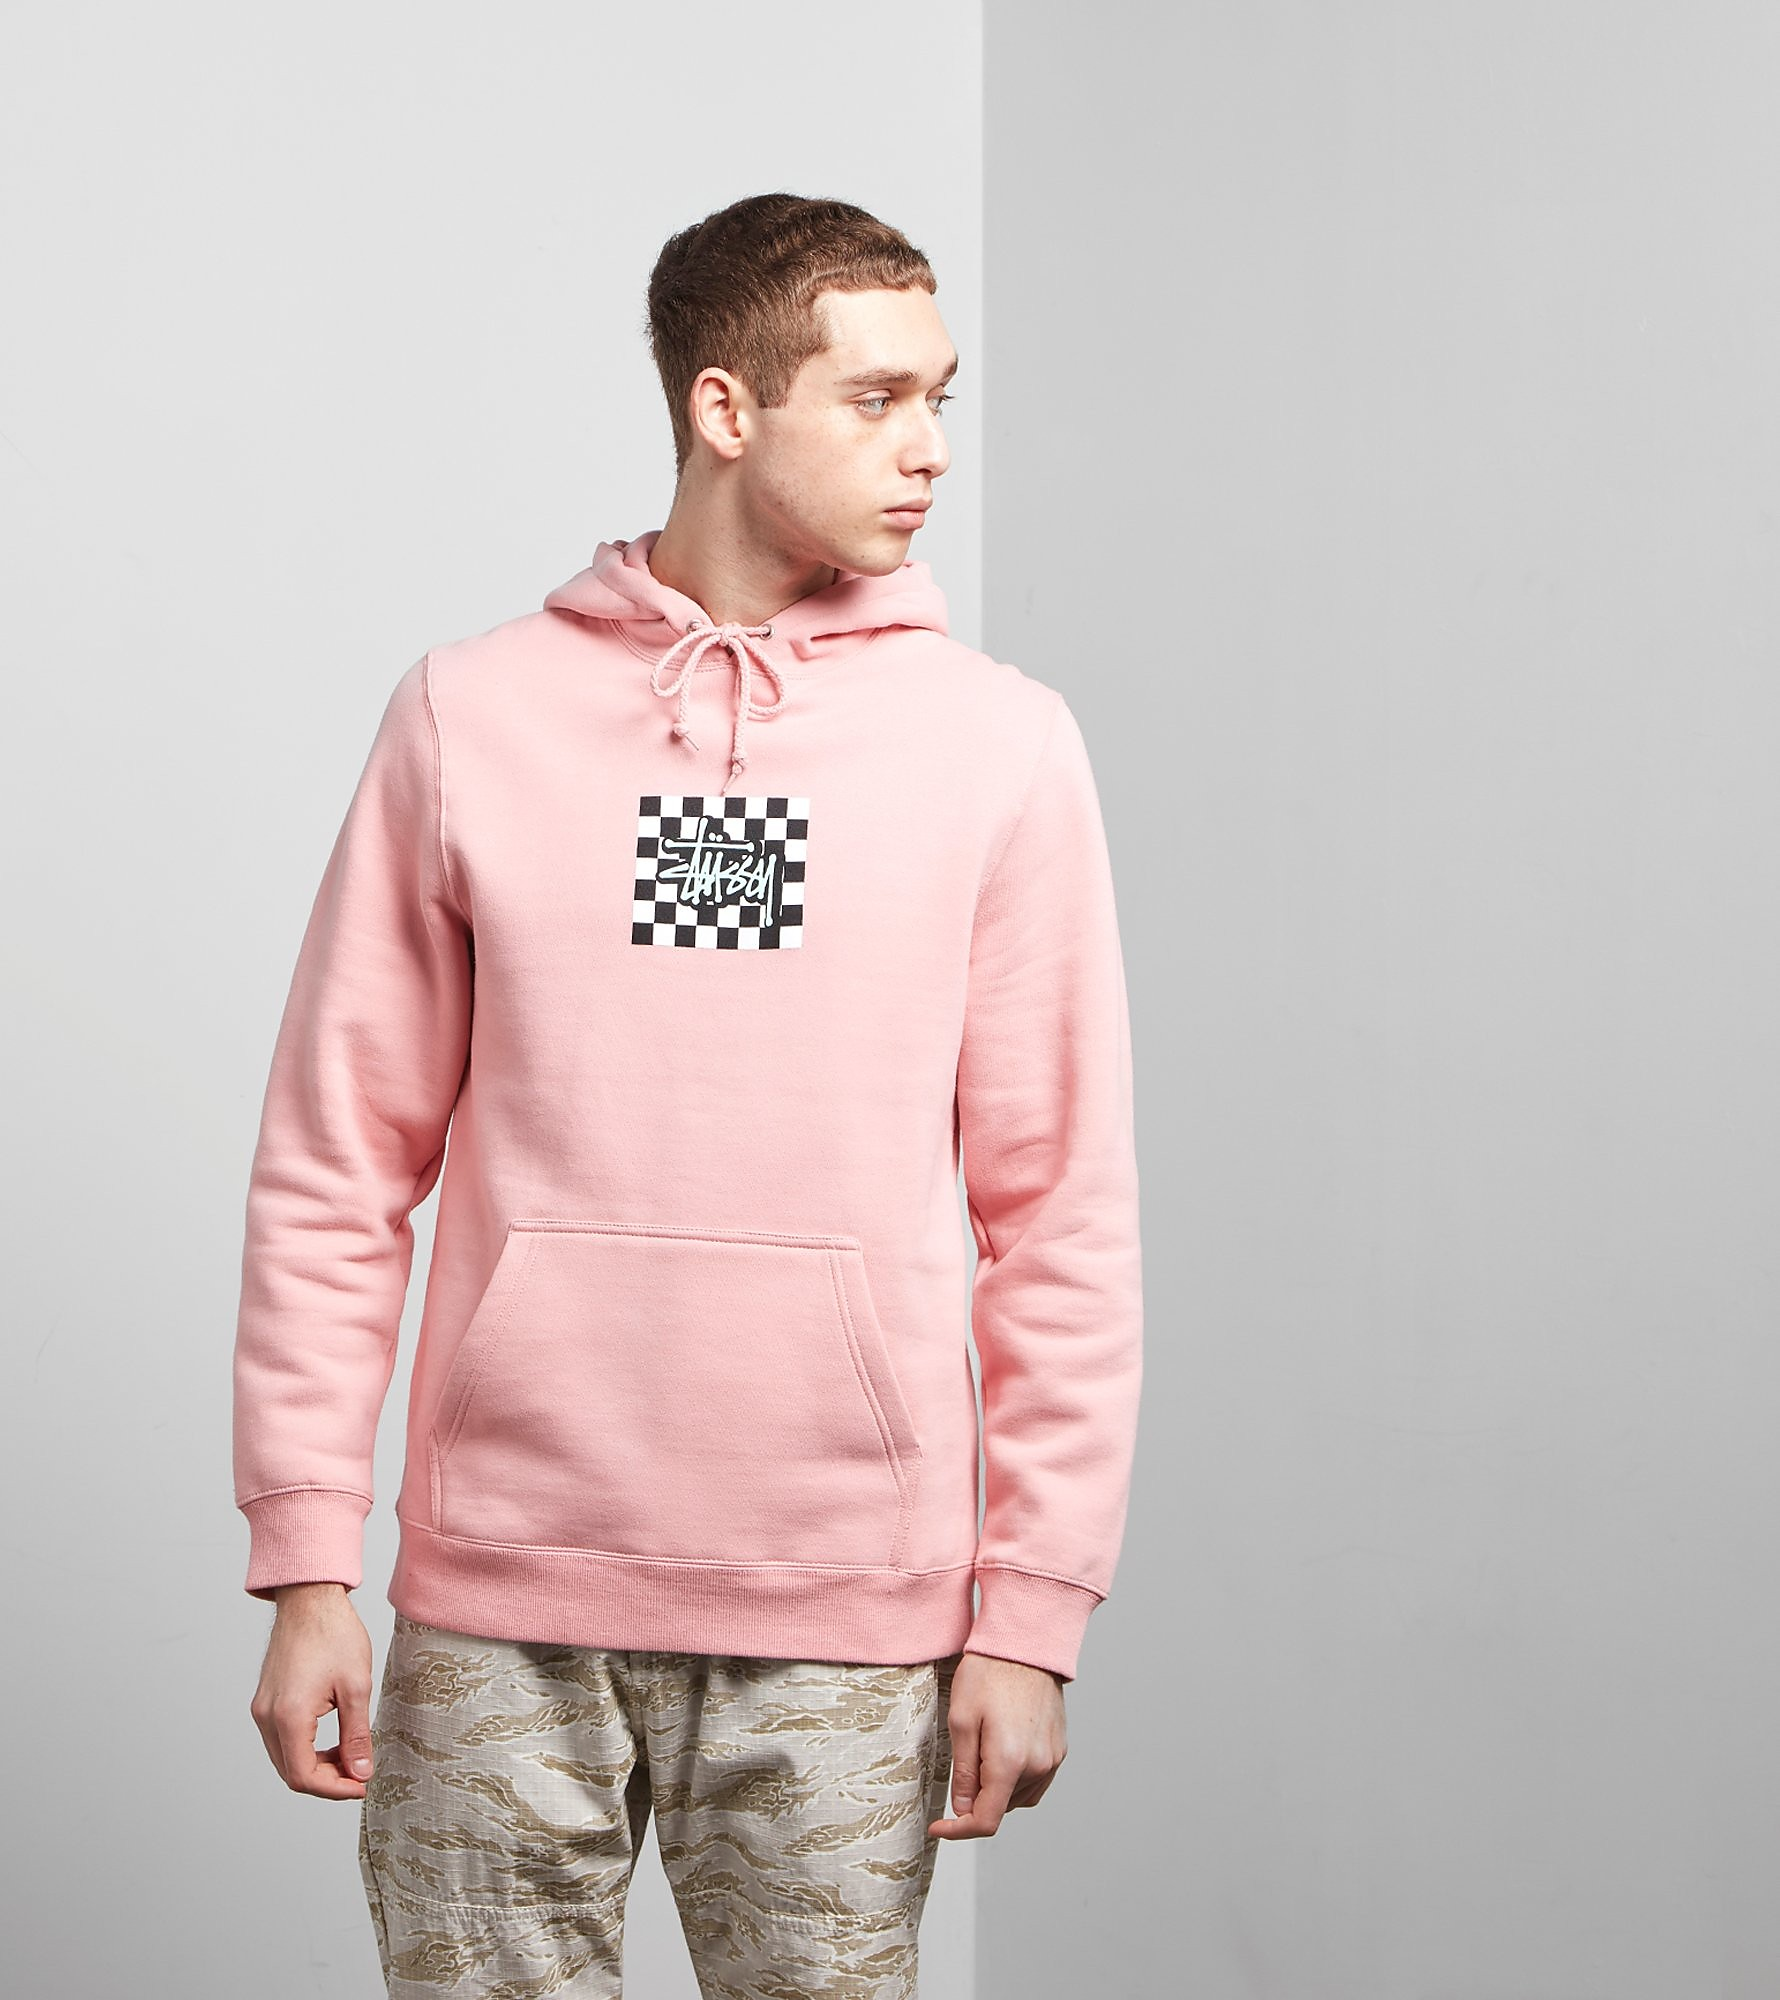 Stussy Checkers Hoody